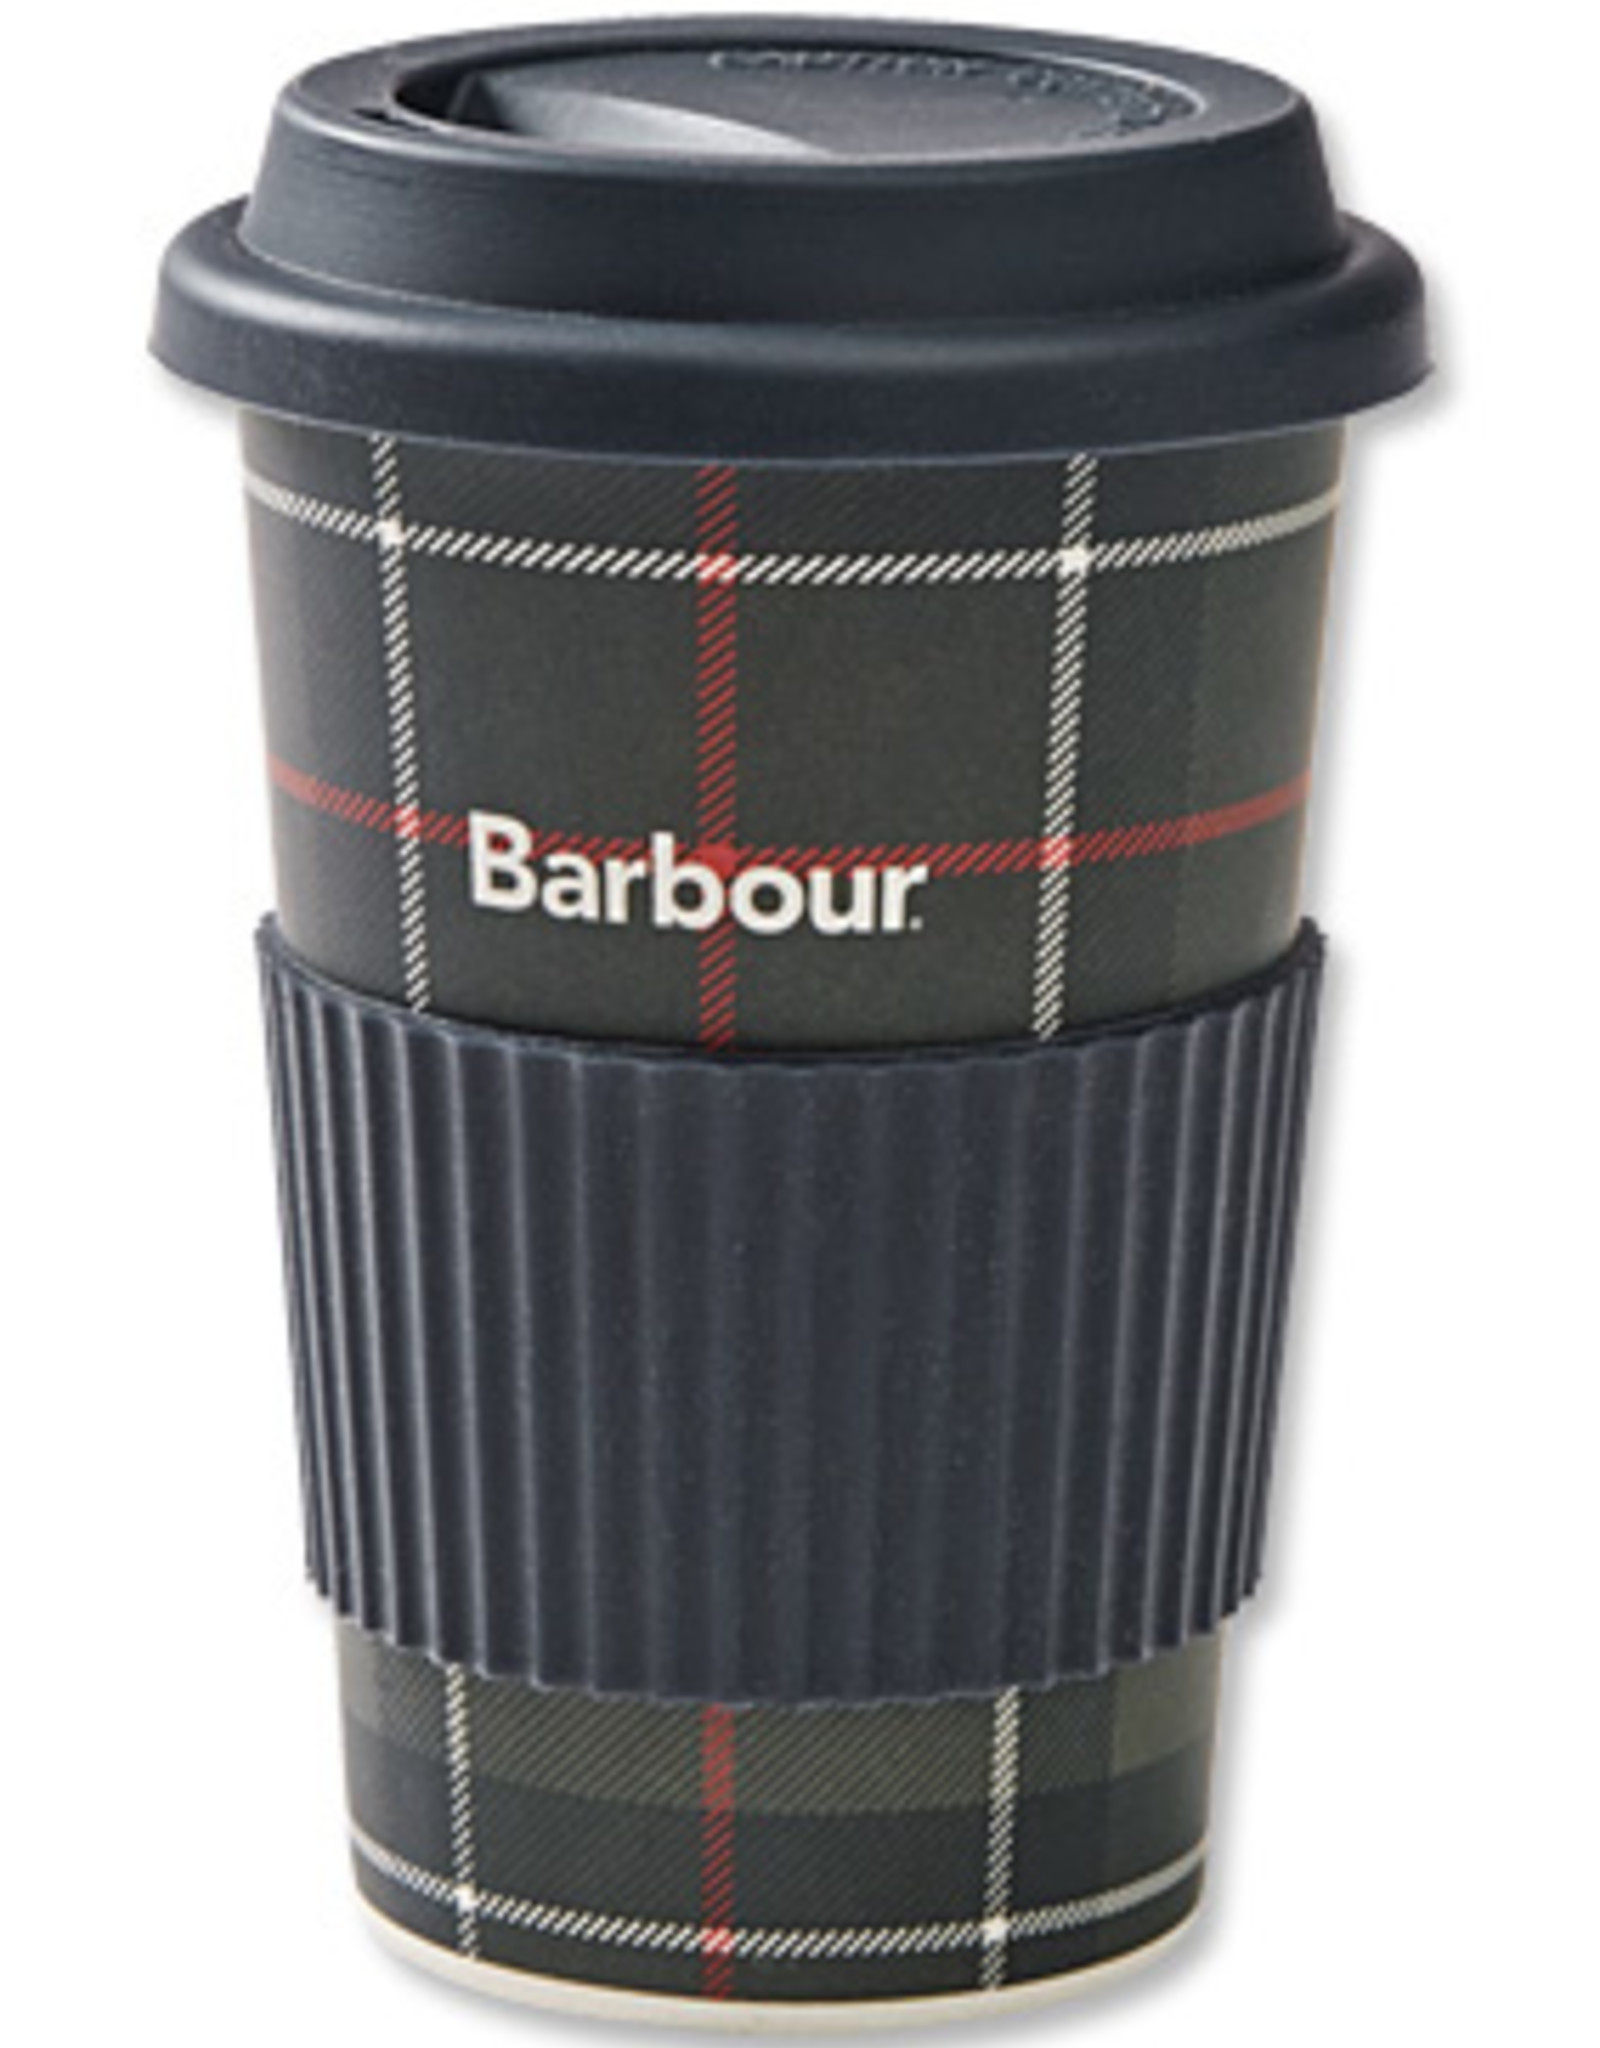 Barbour Barbour Travel Mug